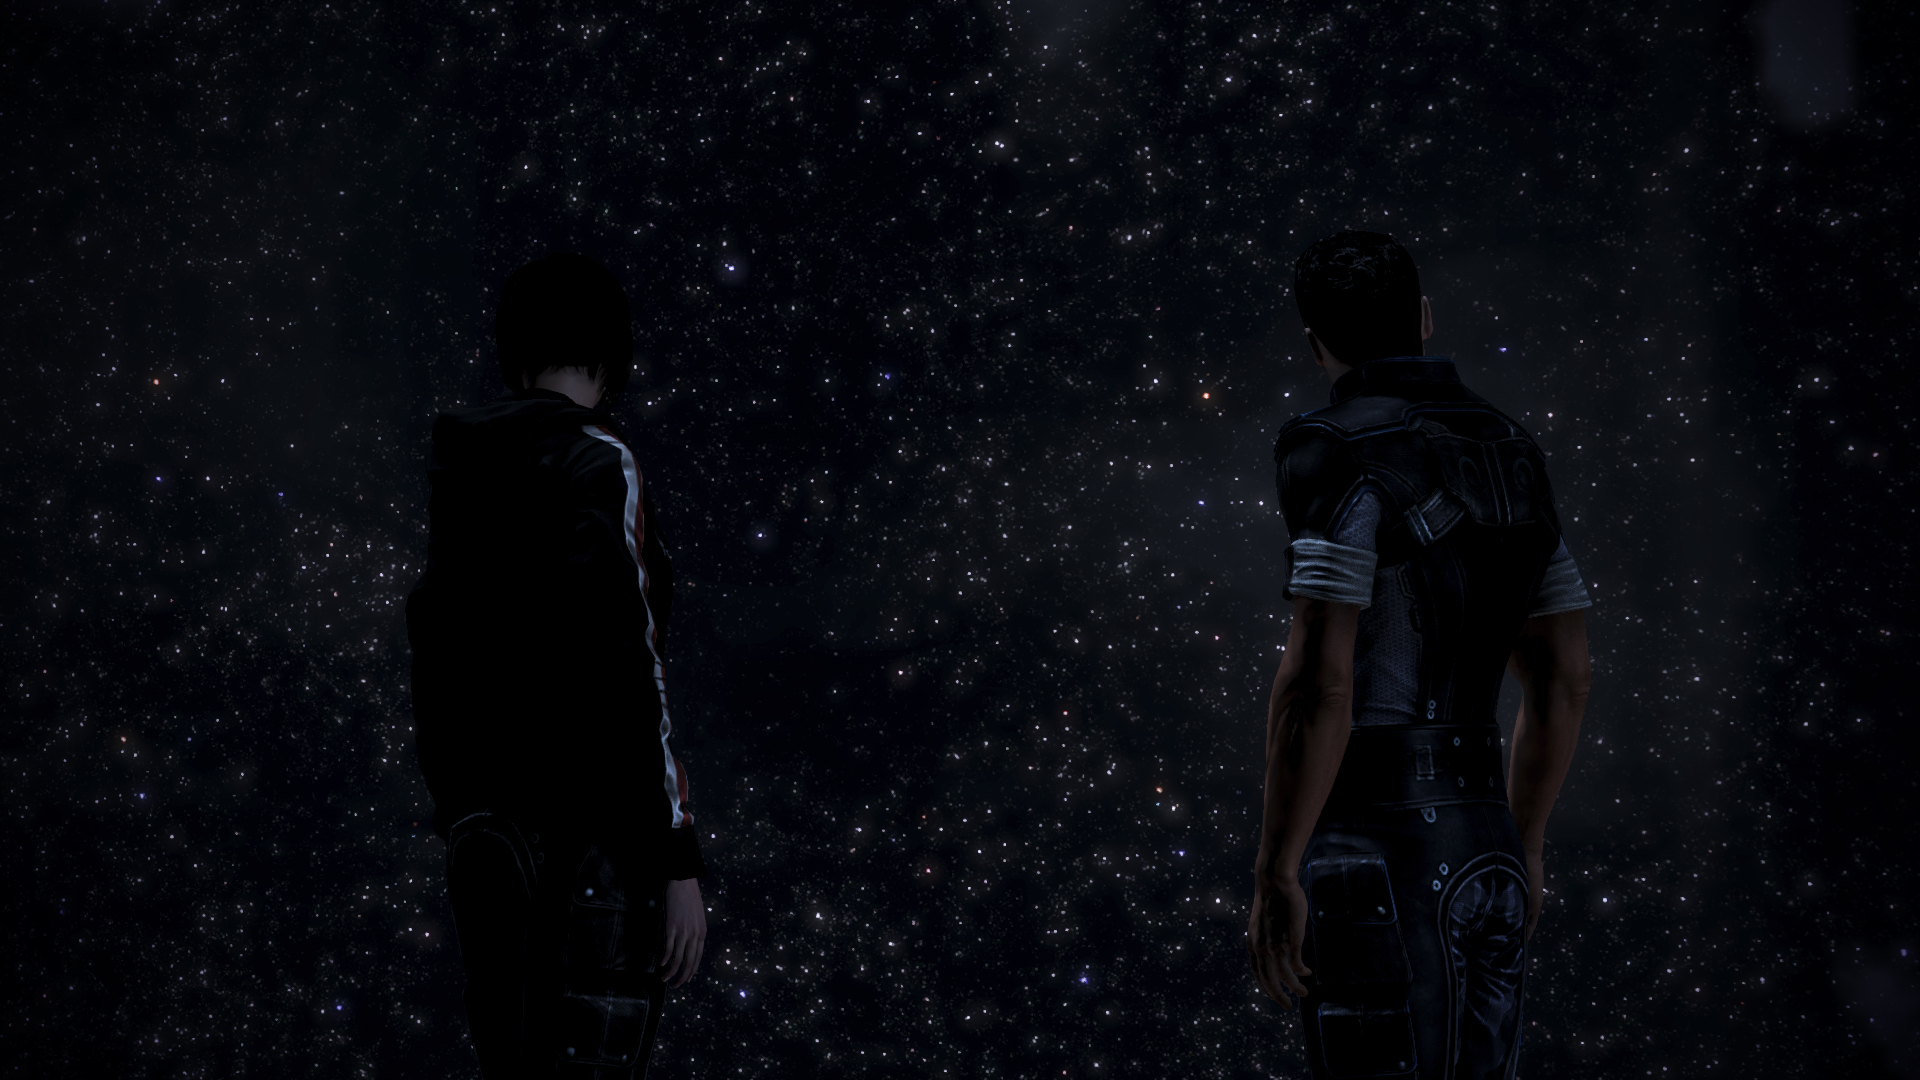 Just-like-the-awesomest-Mass-Effect-screenshot-ever-1920x1080-wallpaper-wpc5806516